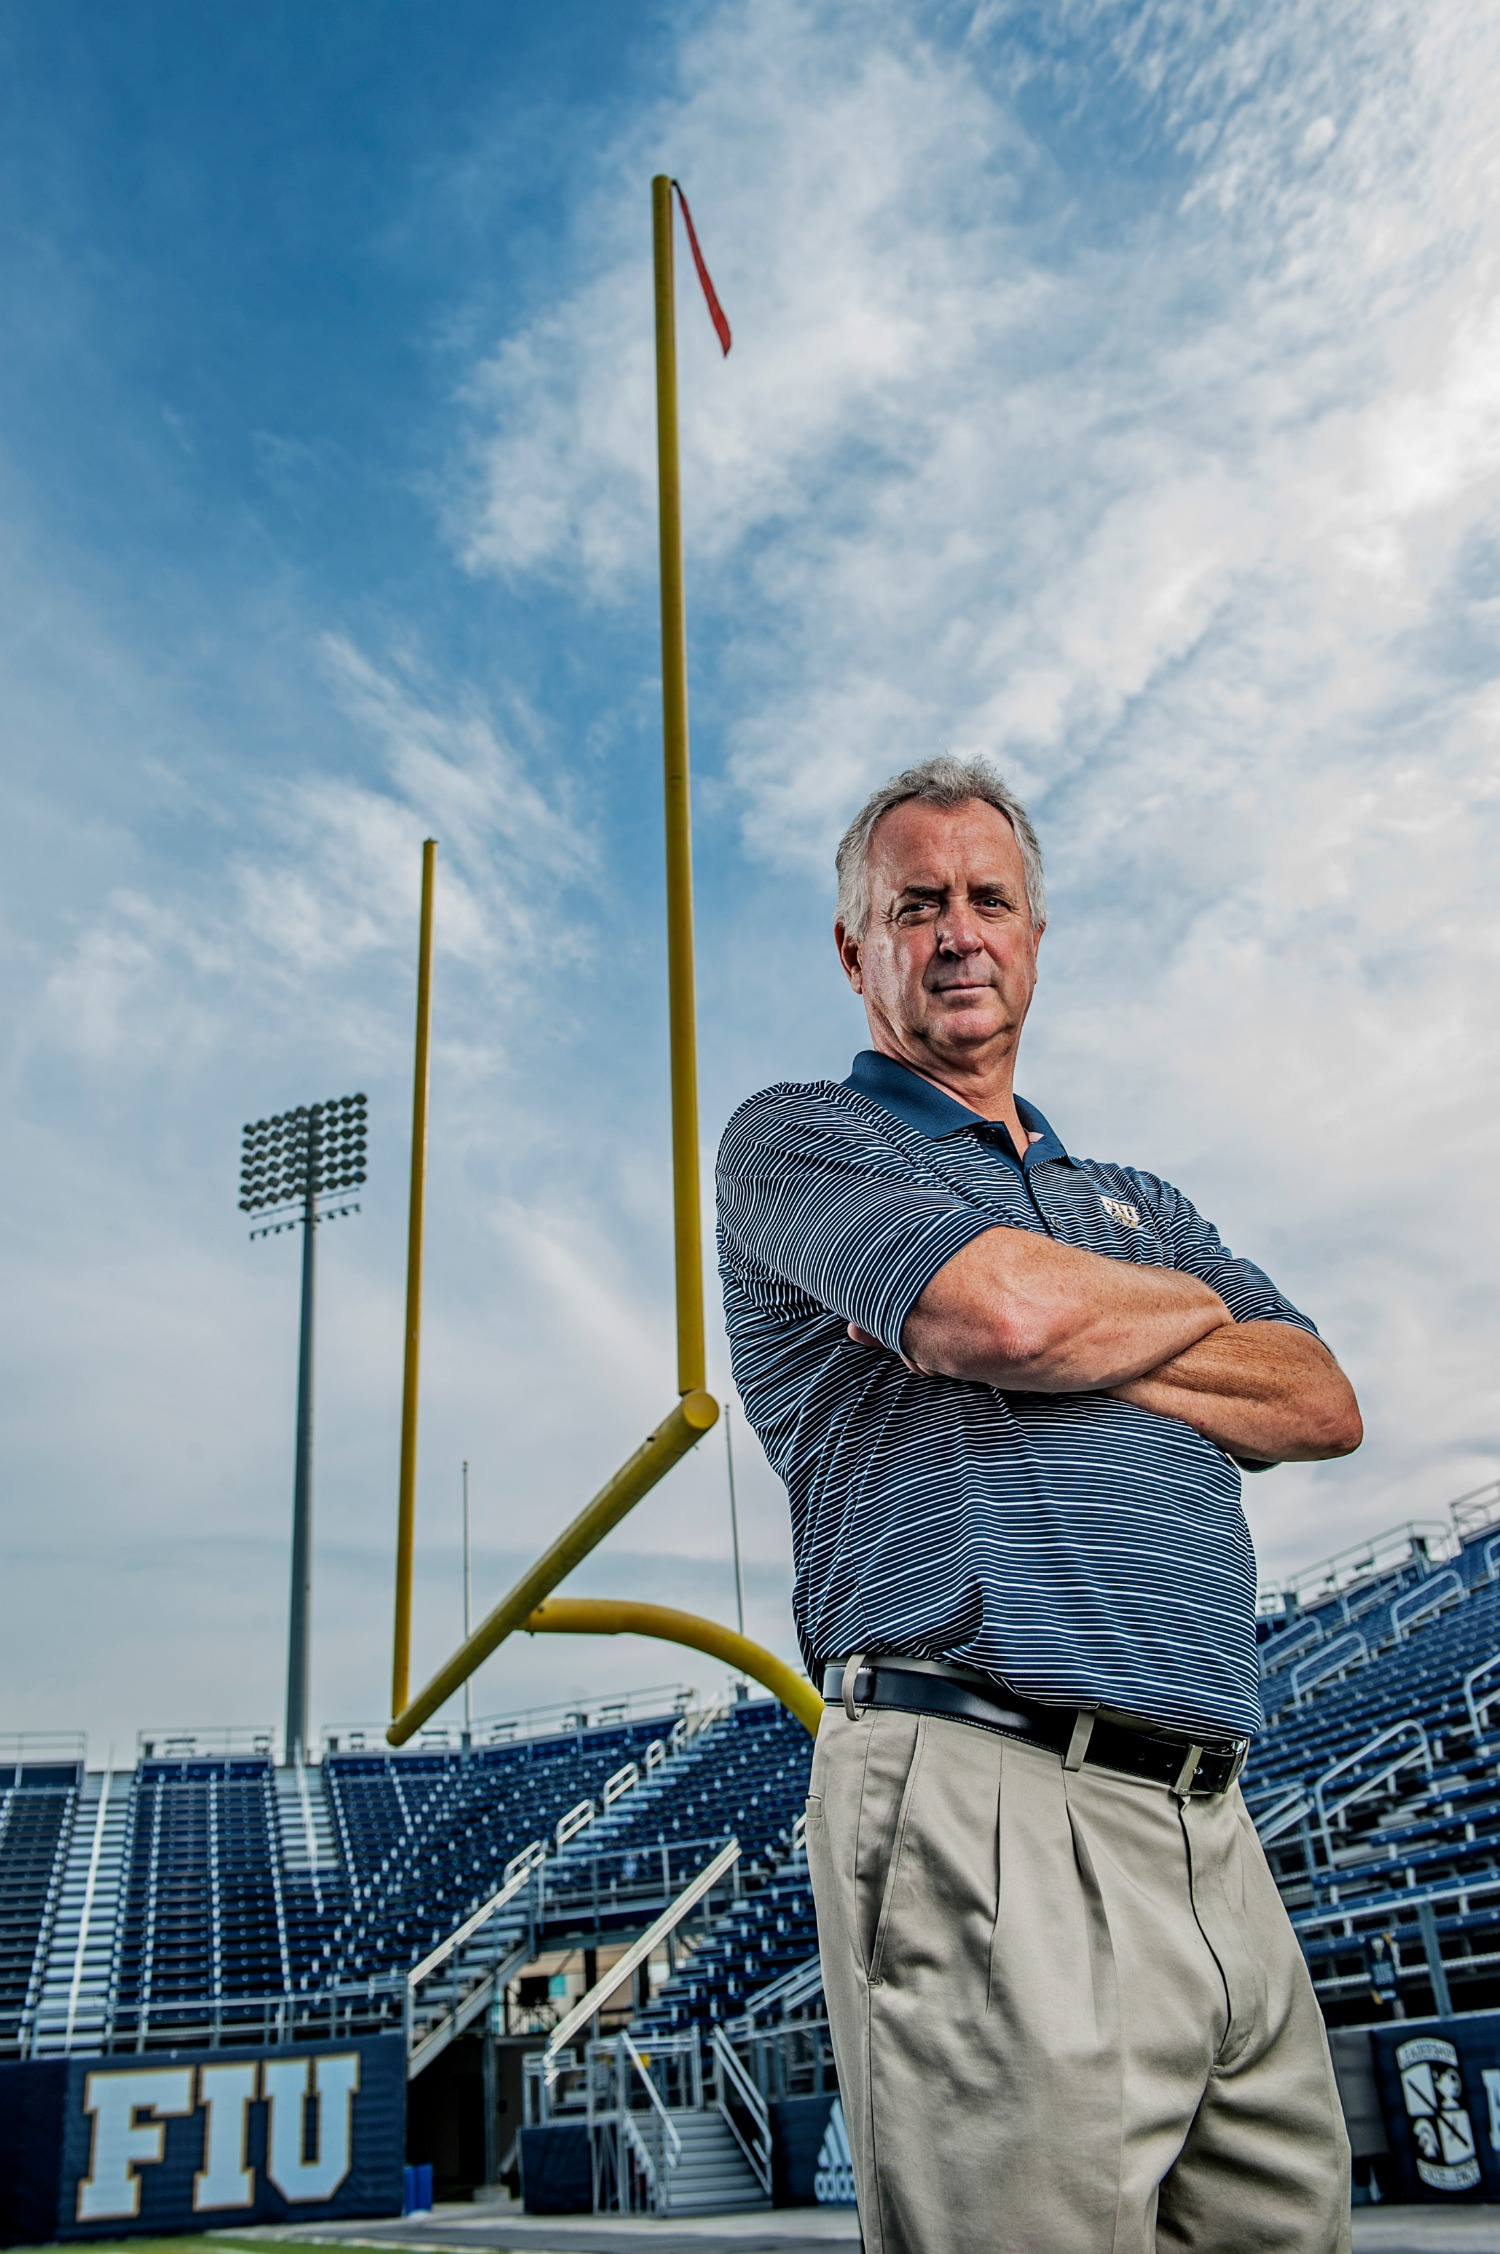 Florida International University head football coach Ron Turner by Josh Ritchie